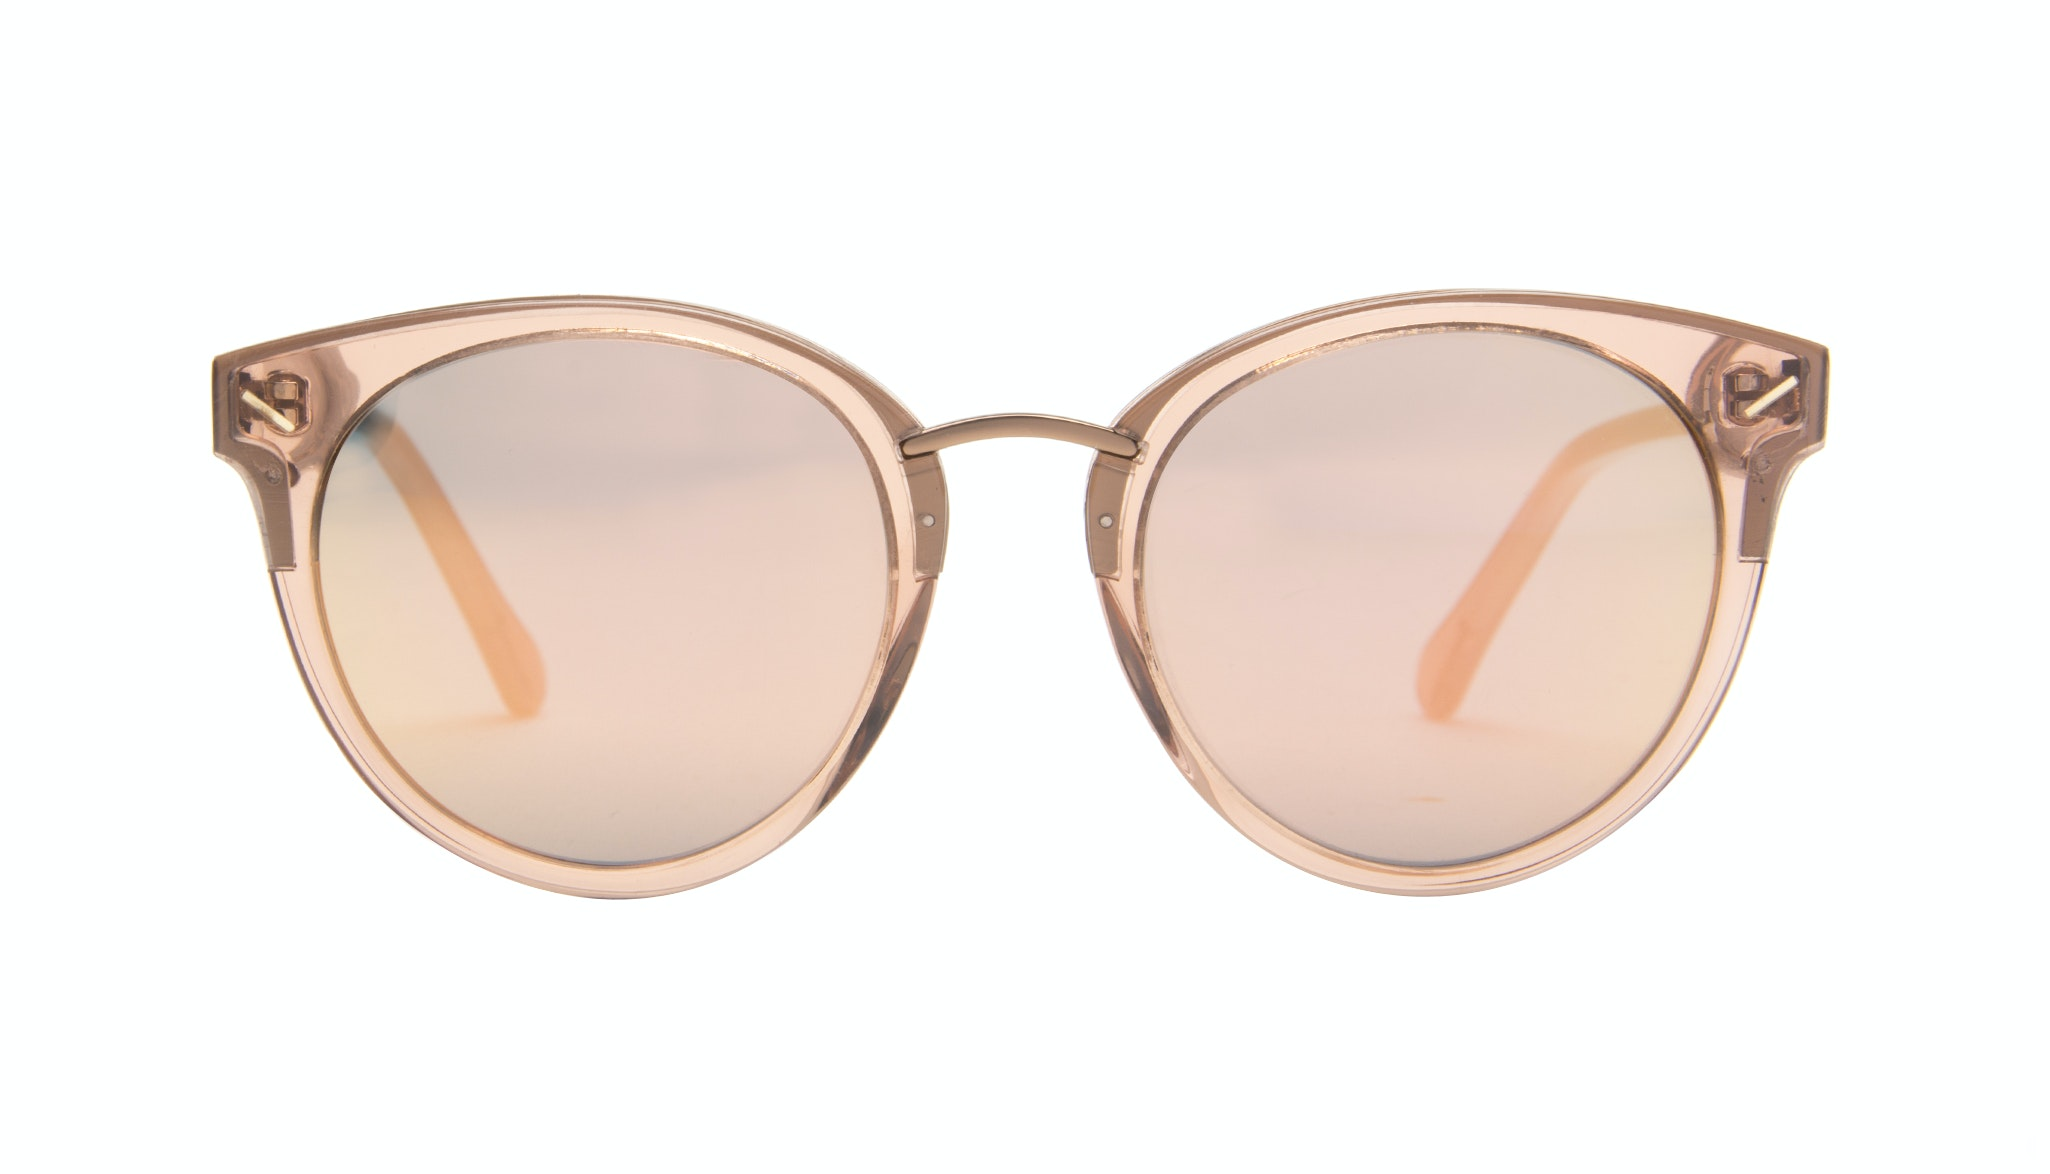 Affordable Fashion Glasses Cat Eye Round Sunglasses Women Element Rose